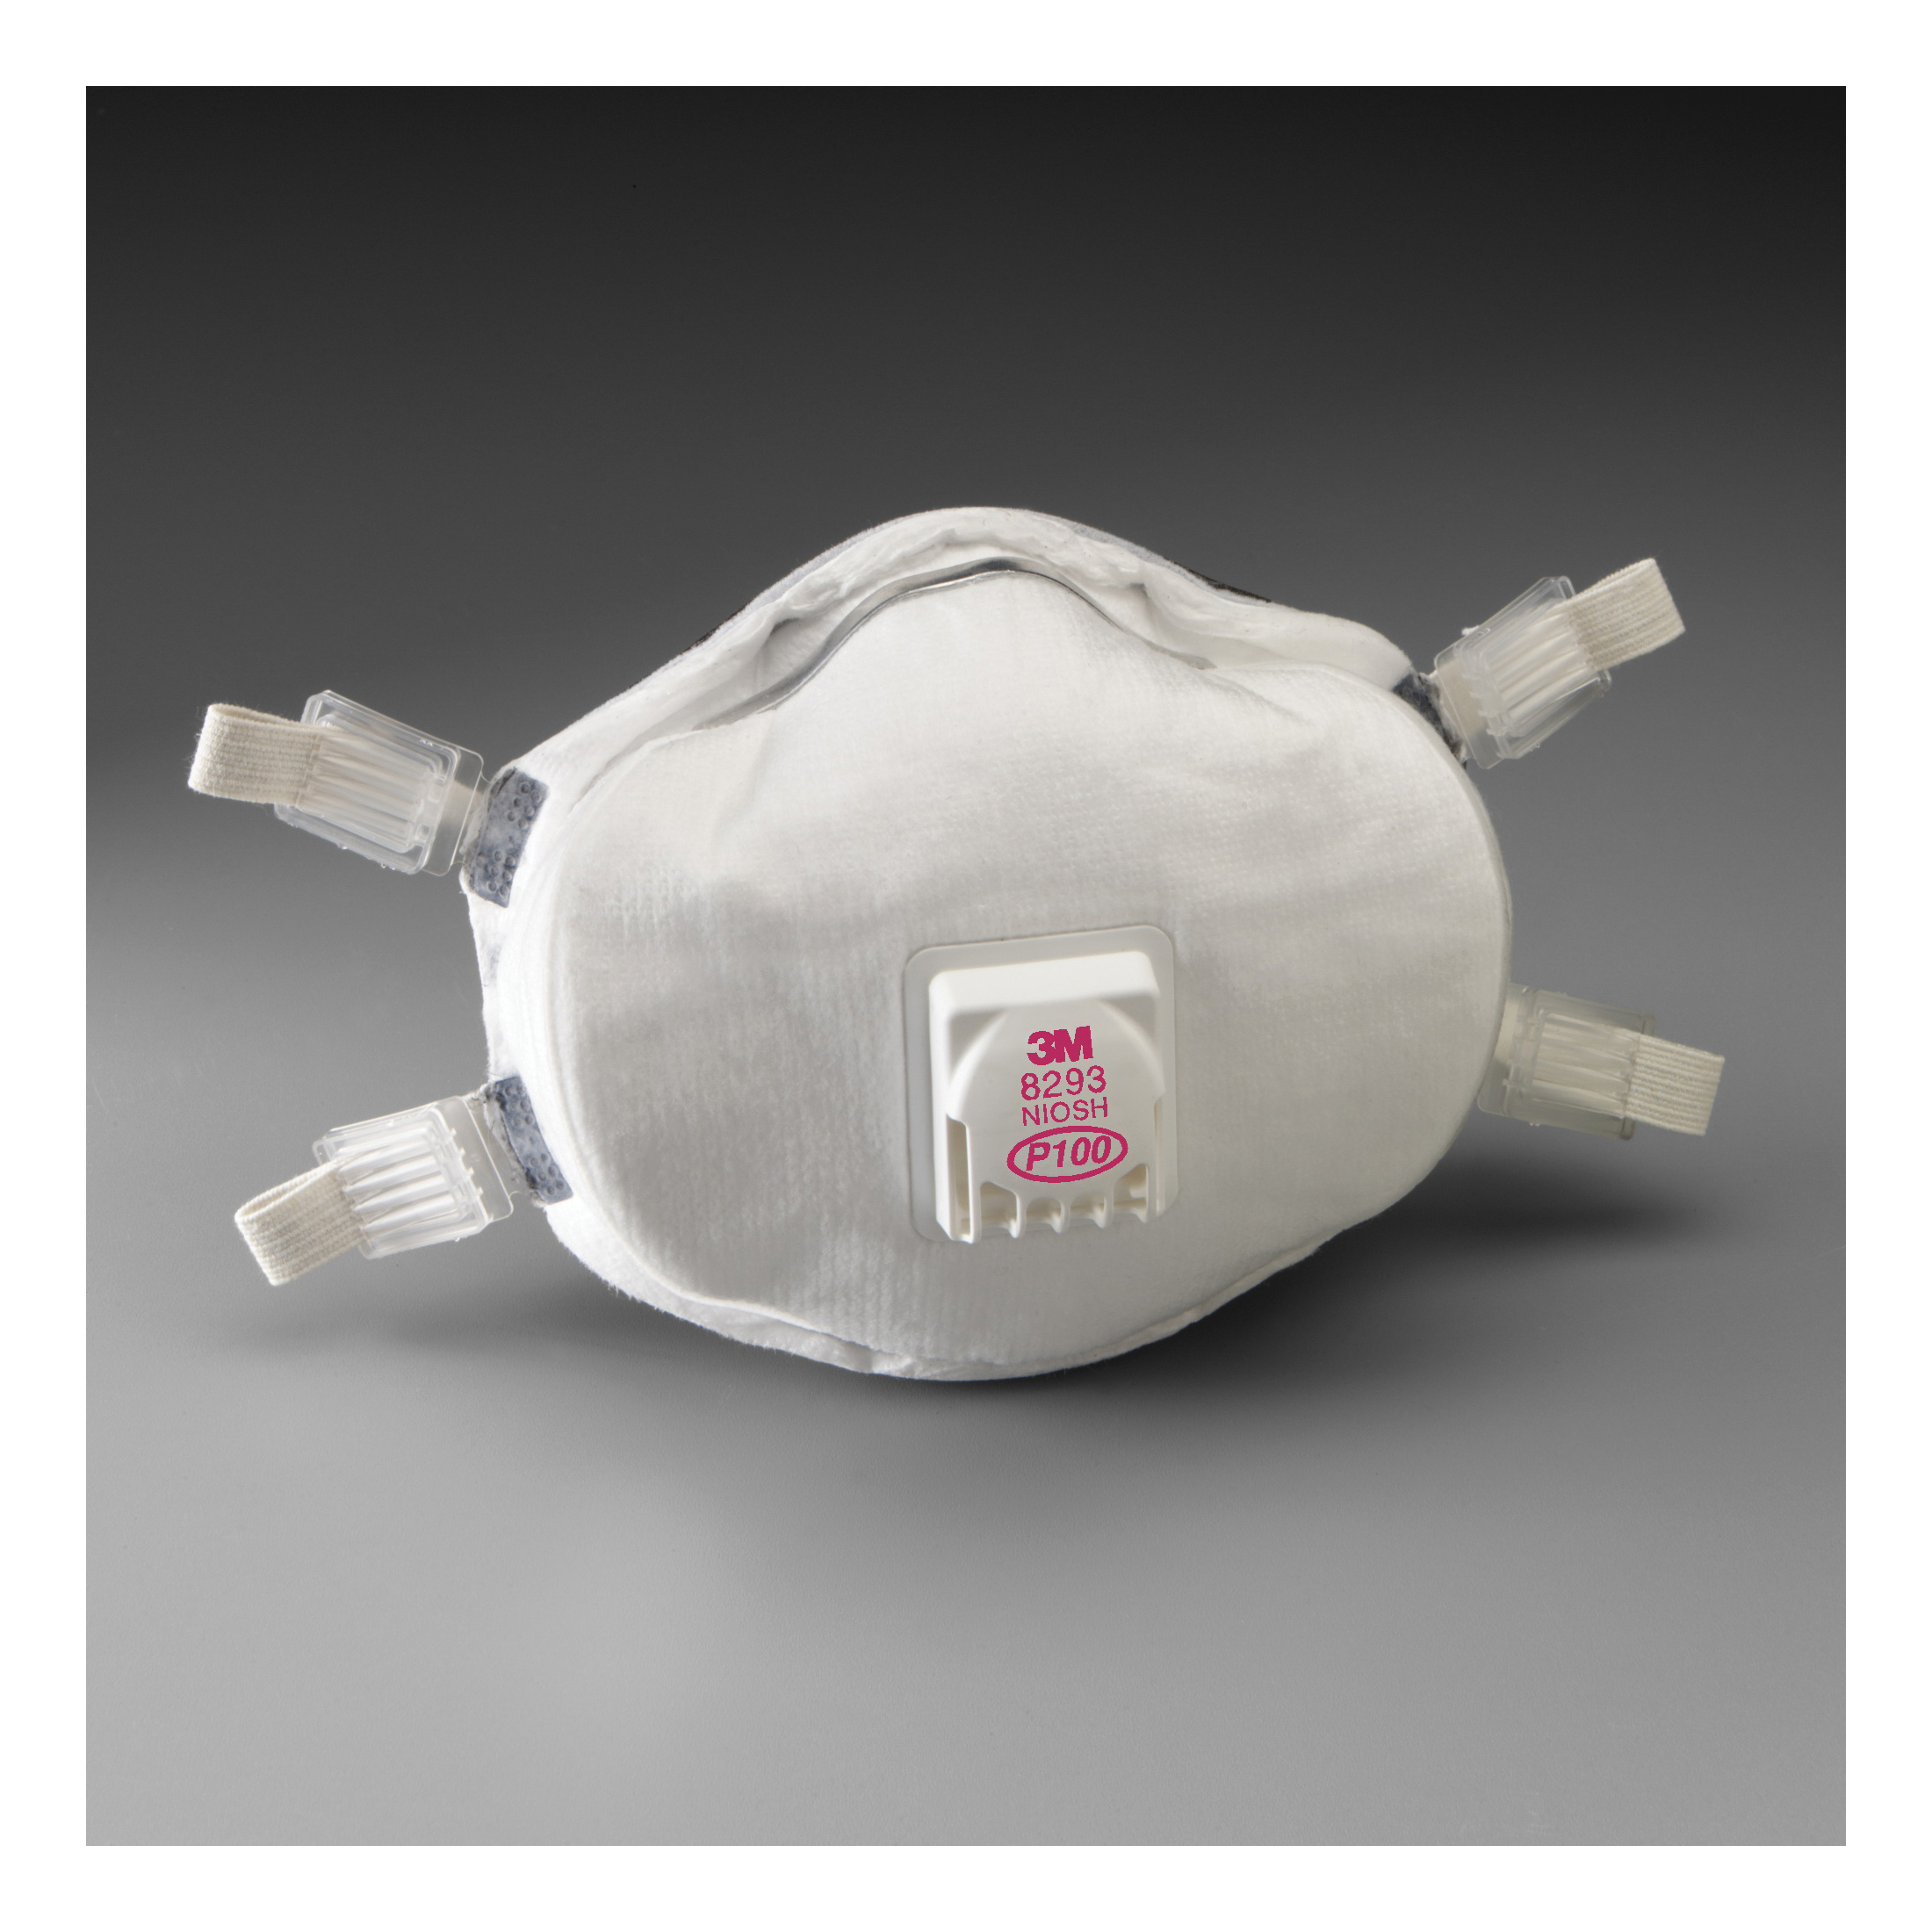 3M™ 051138-54336 Cup Style Disposable Lightweight Particulate Respirator, Standard, Resists: MDA, Arsenic, Cadmium, Certain Non-Oil Based Particles, Dust and other Particles